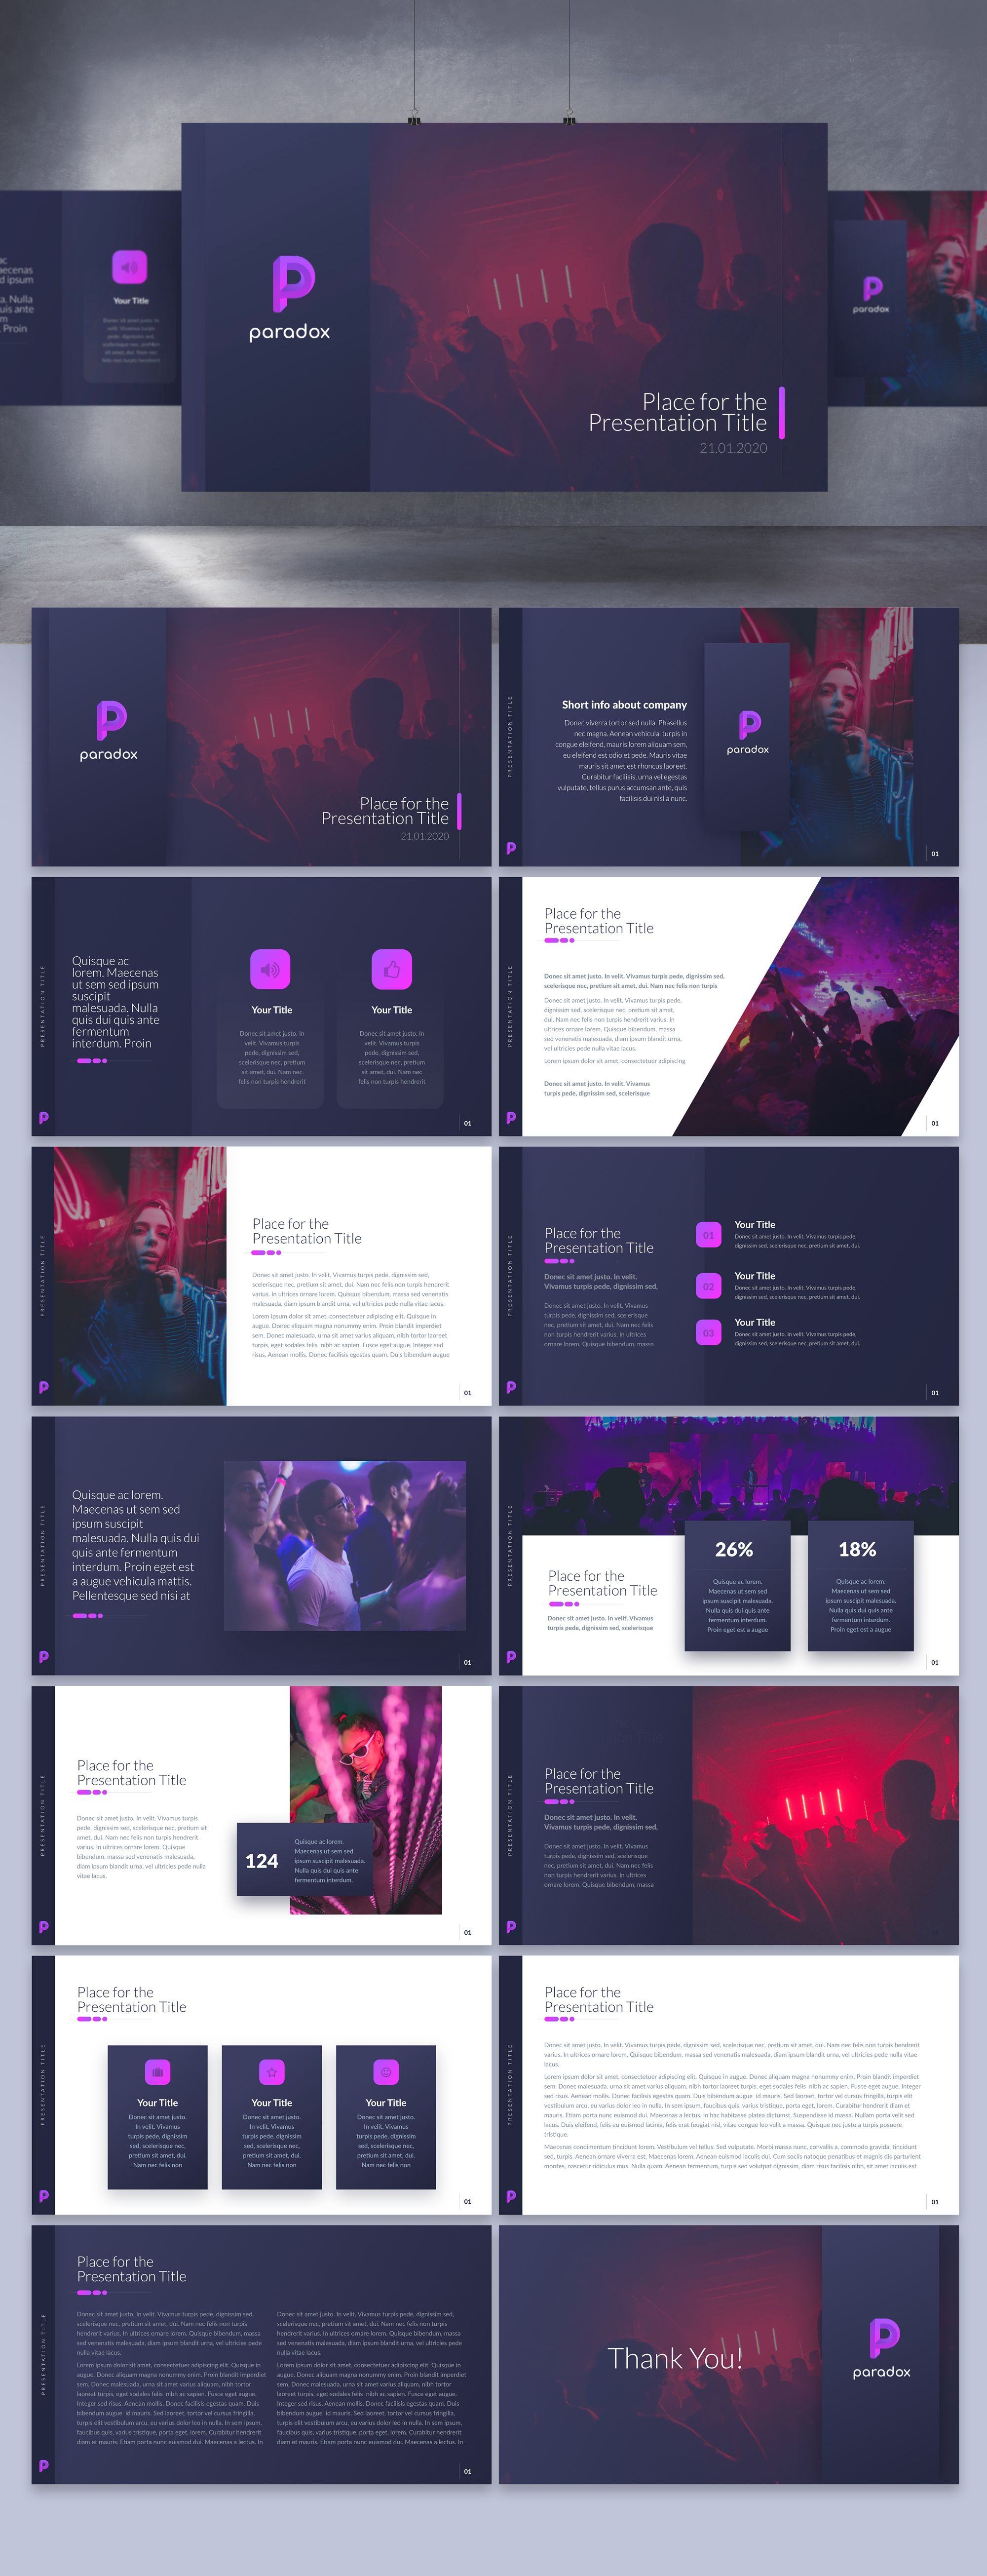 Cool, sexy nightclub app needs deck for pitching to high-profile individuals. app designs attached. | PowerPoint template contest